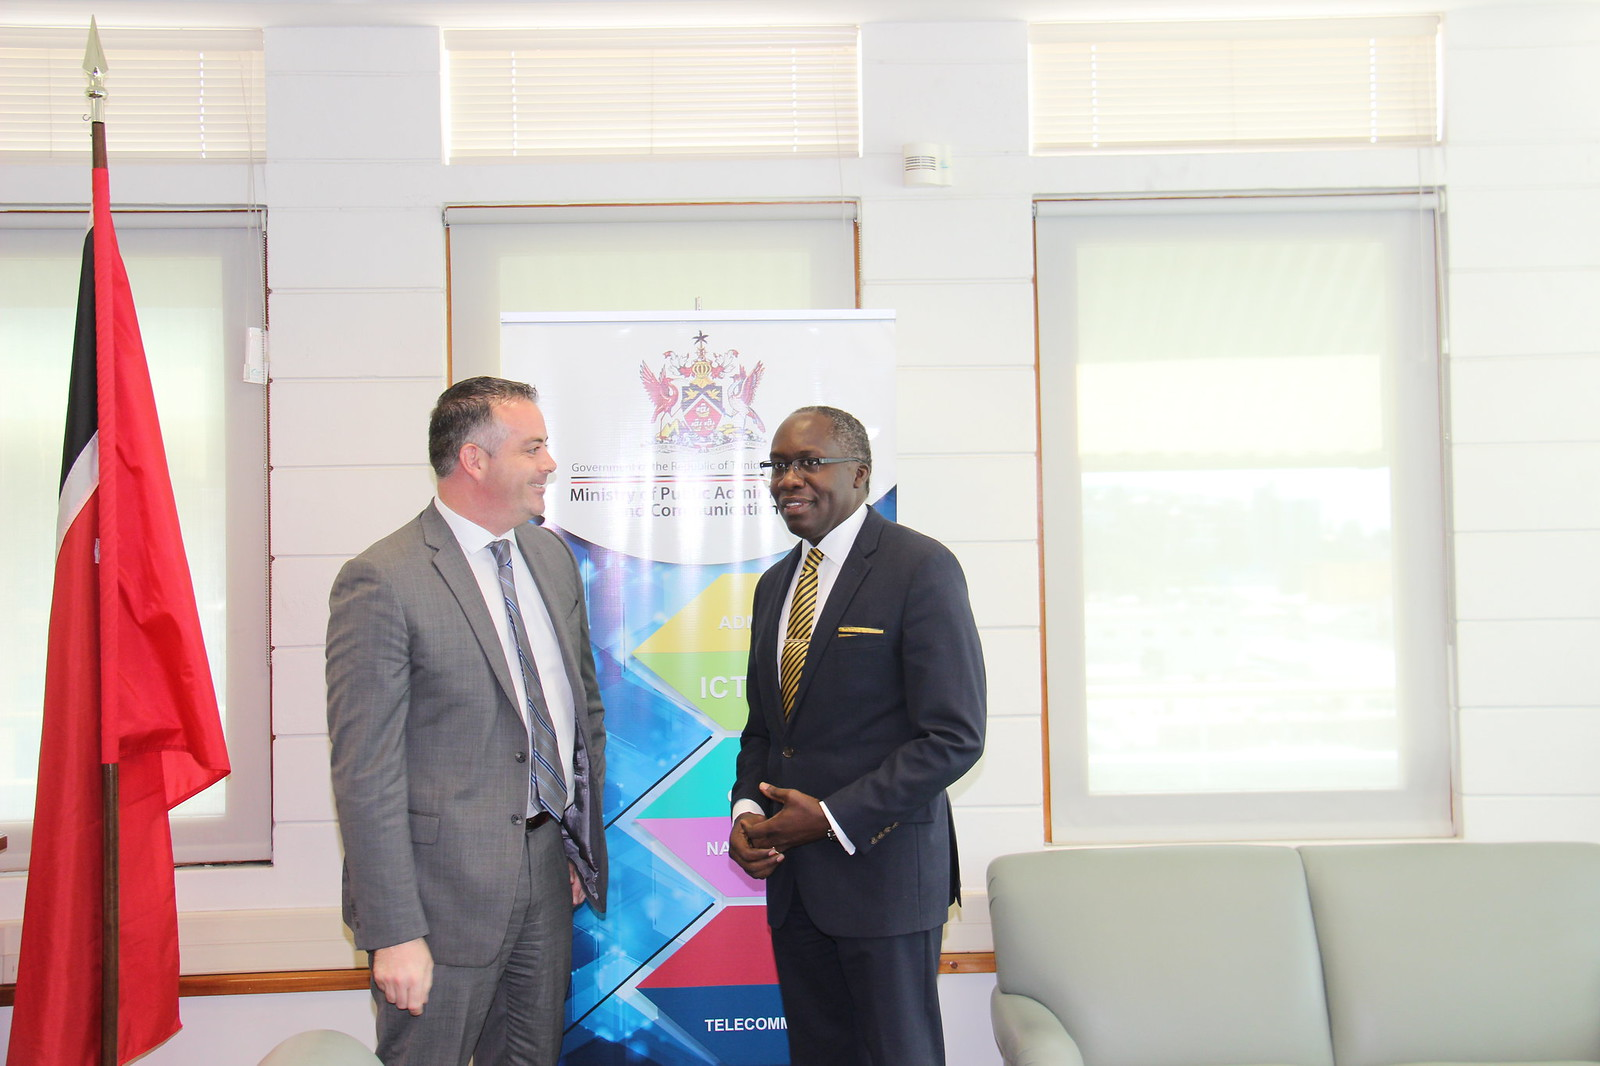 Meeting with Digicel Trinidad and Tobago CEO John Delves